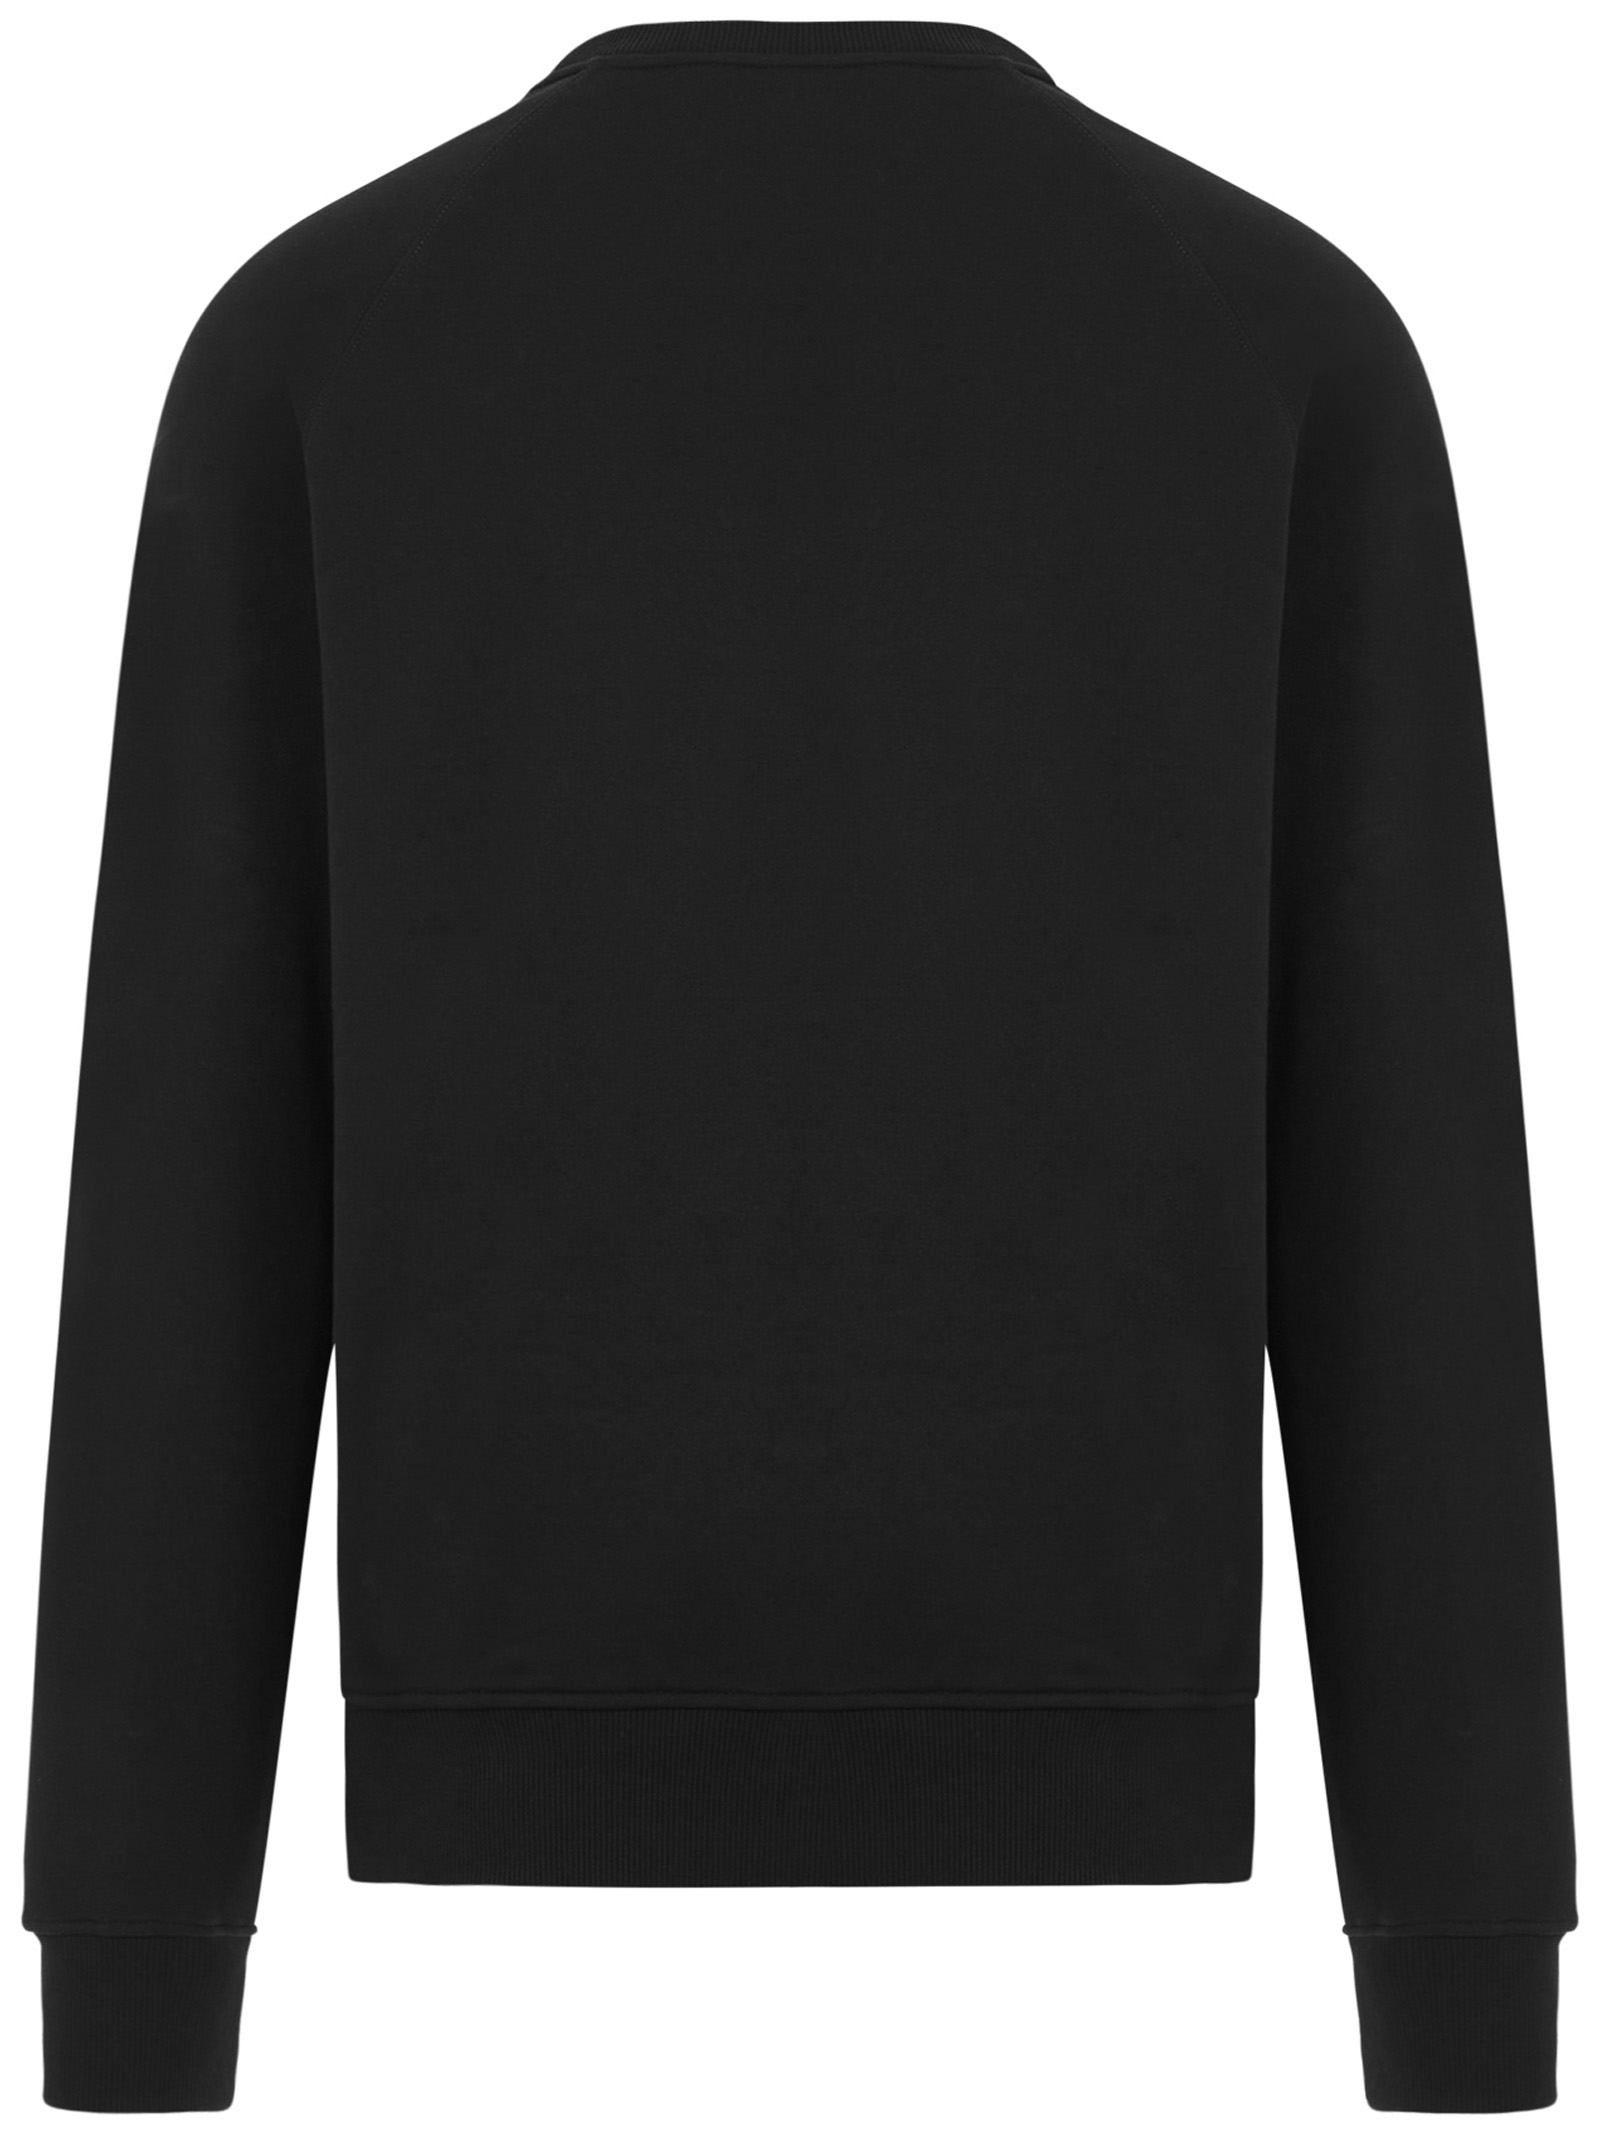 Balmain Paris sweatshirt Balmain Paris | -108764232 | UH03279I3350PA